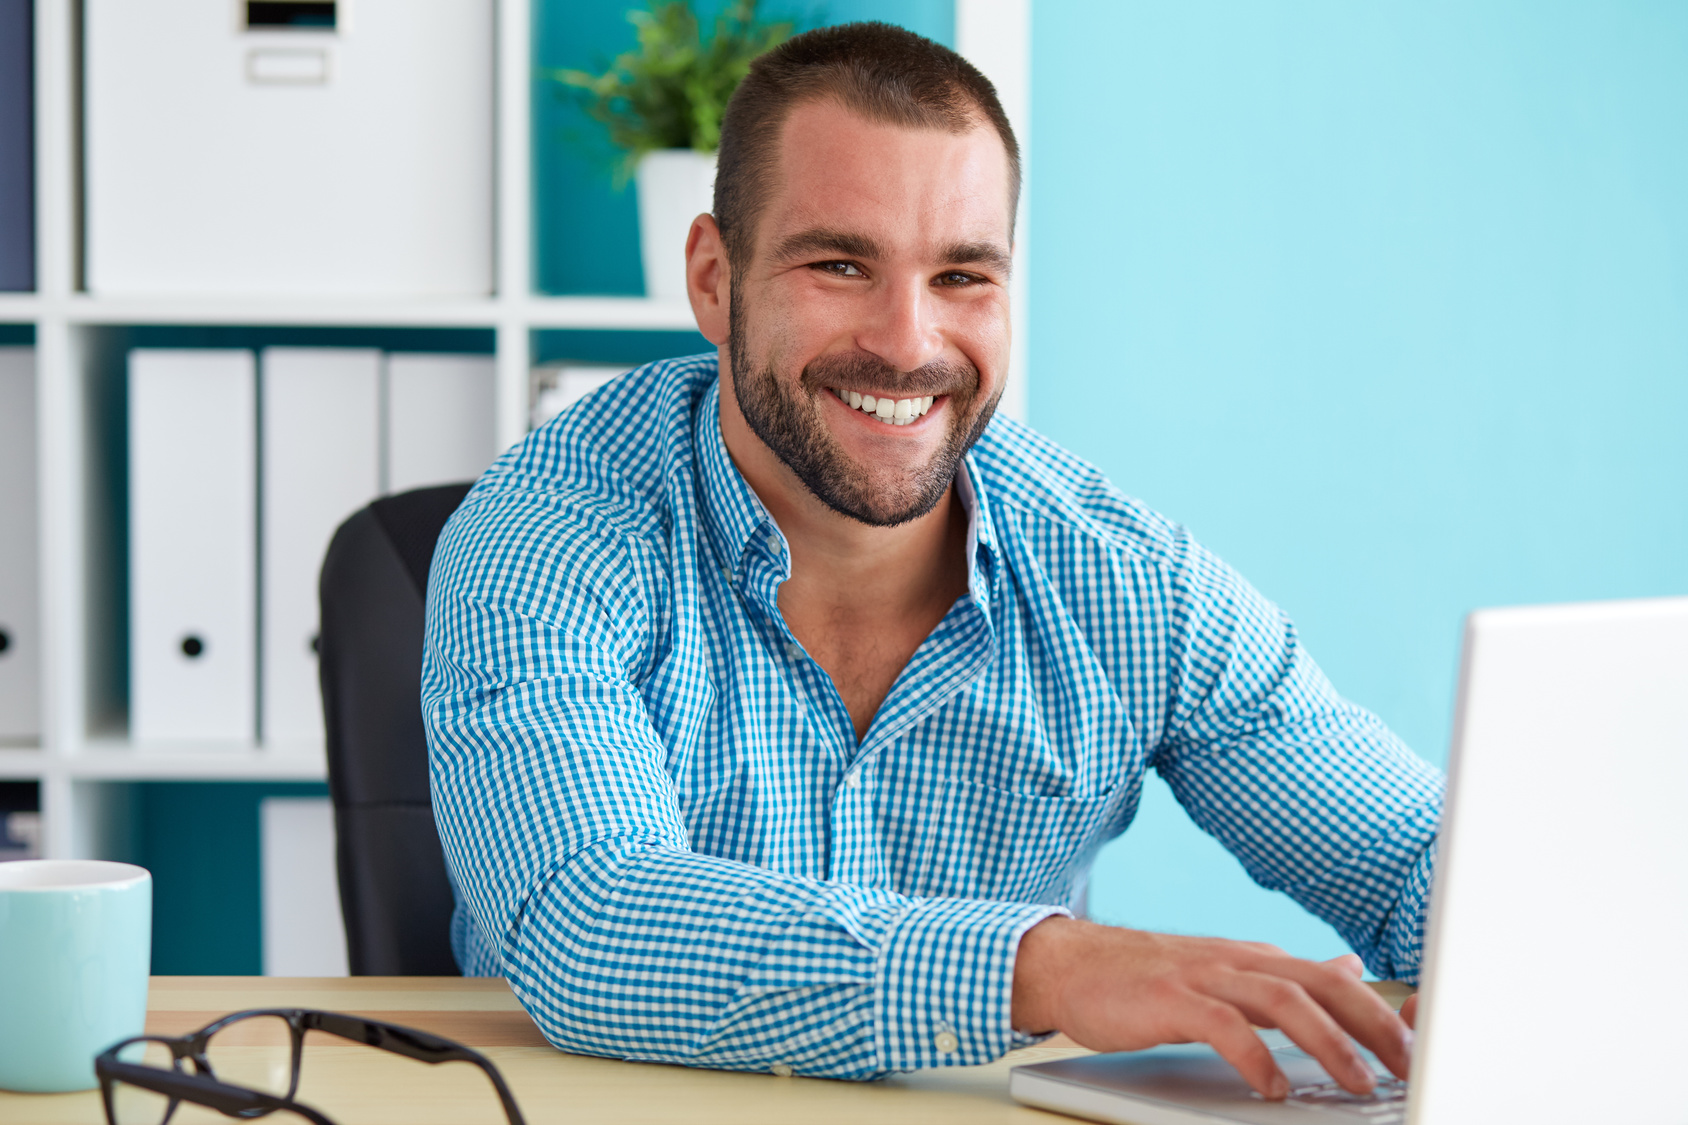 Happy man working in modern office on computer